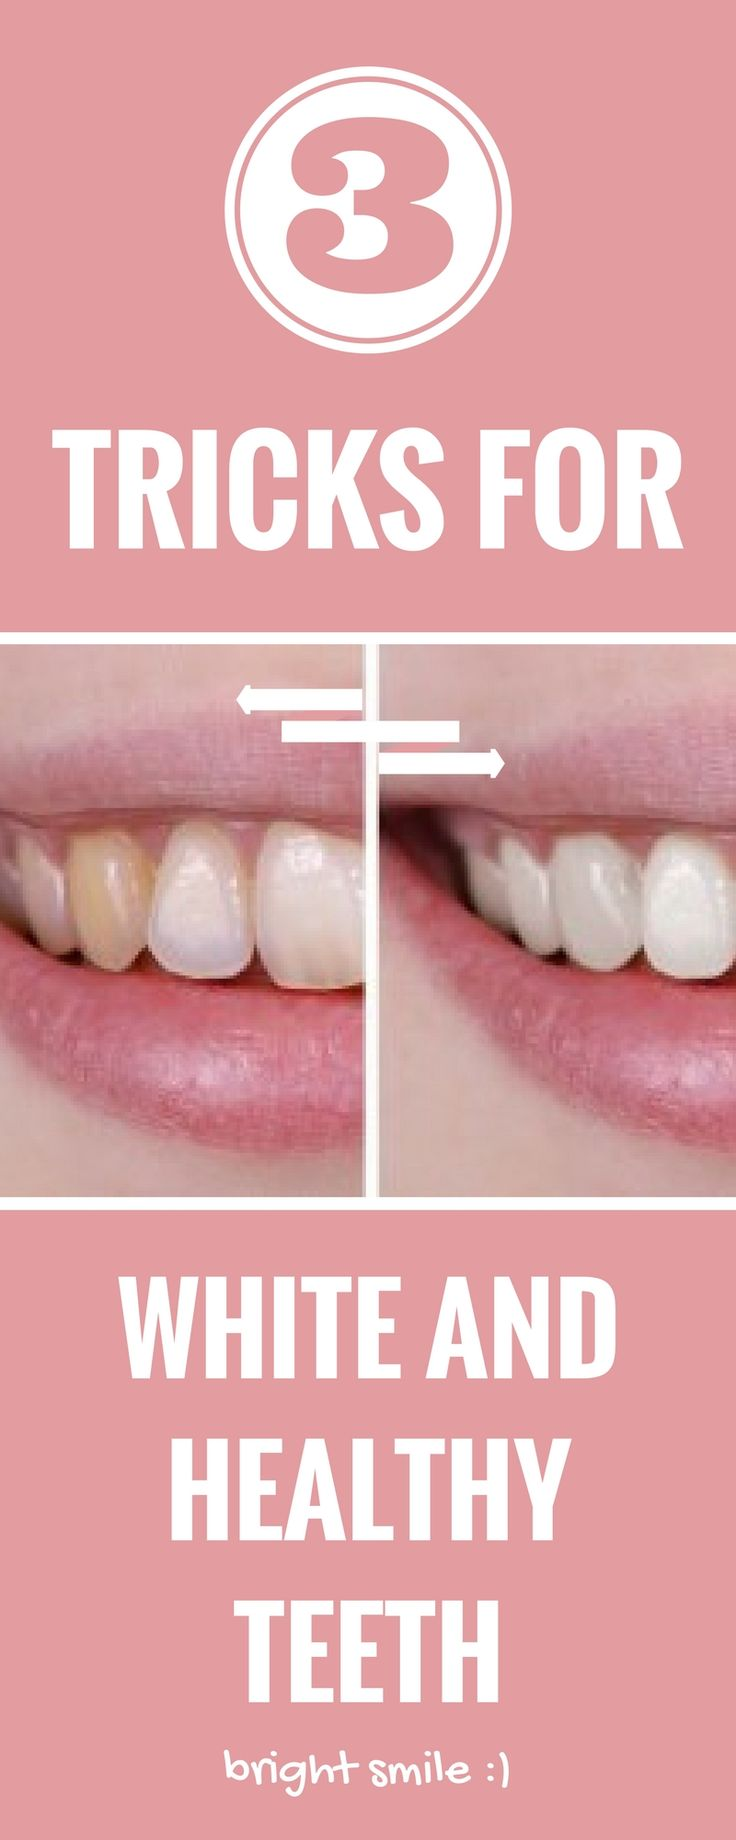 best images about Health and beauty on Pinterest  Teeth Products